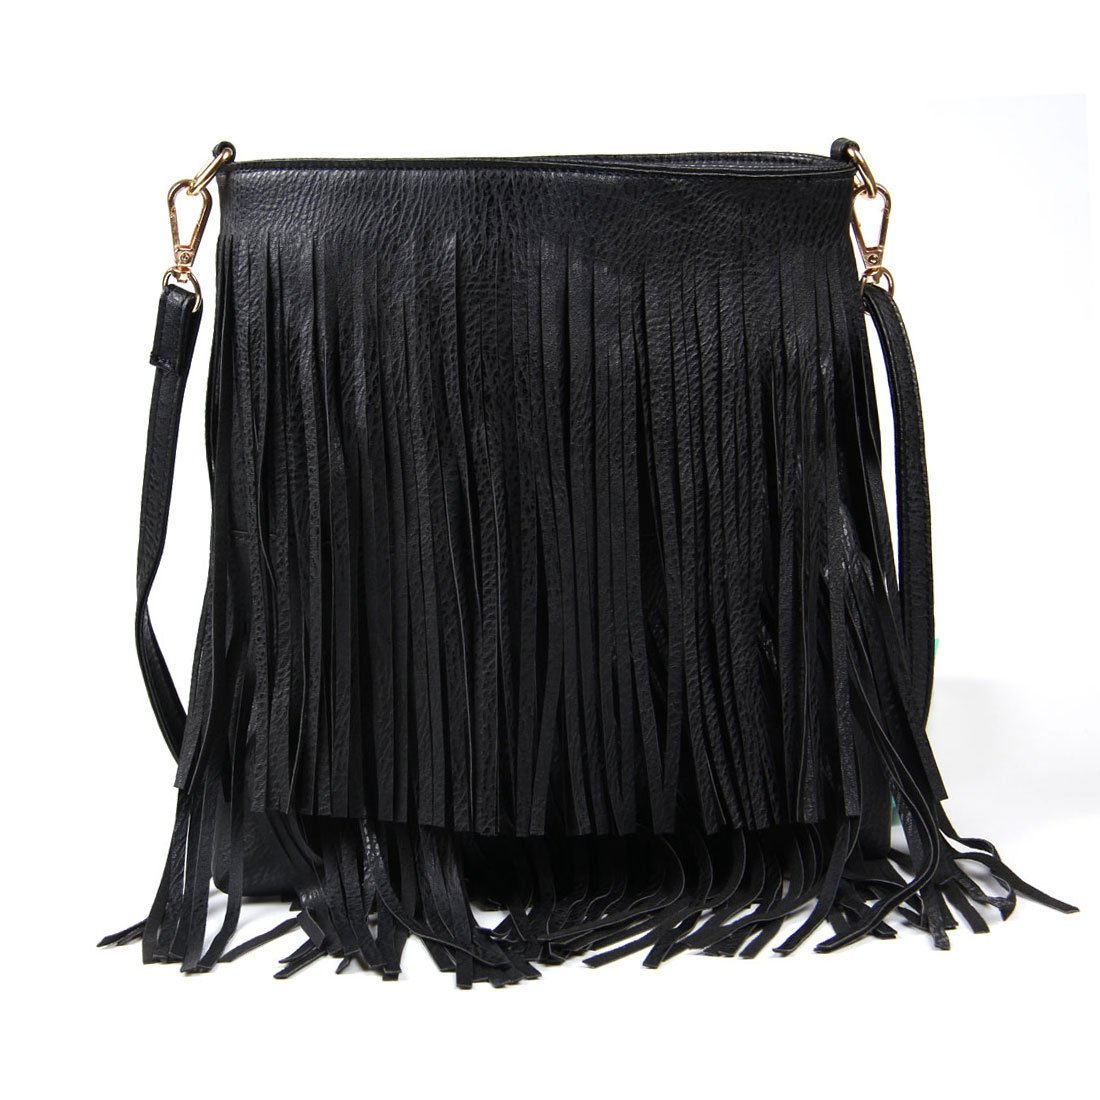 Lanpet Women Fringe Tassel Cross Body Bag Leisure Shoulder Bag  Handbags   Amazon.com d5b7b91c07